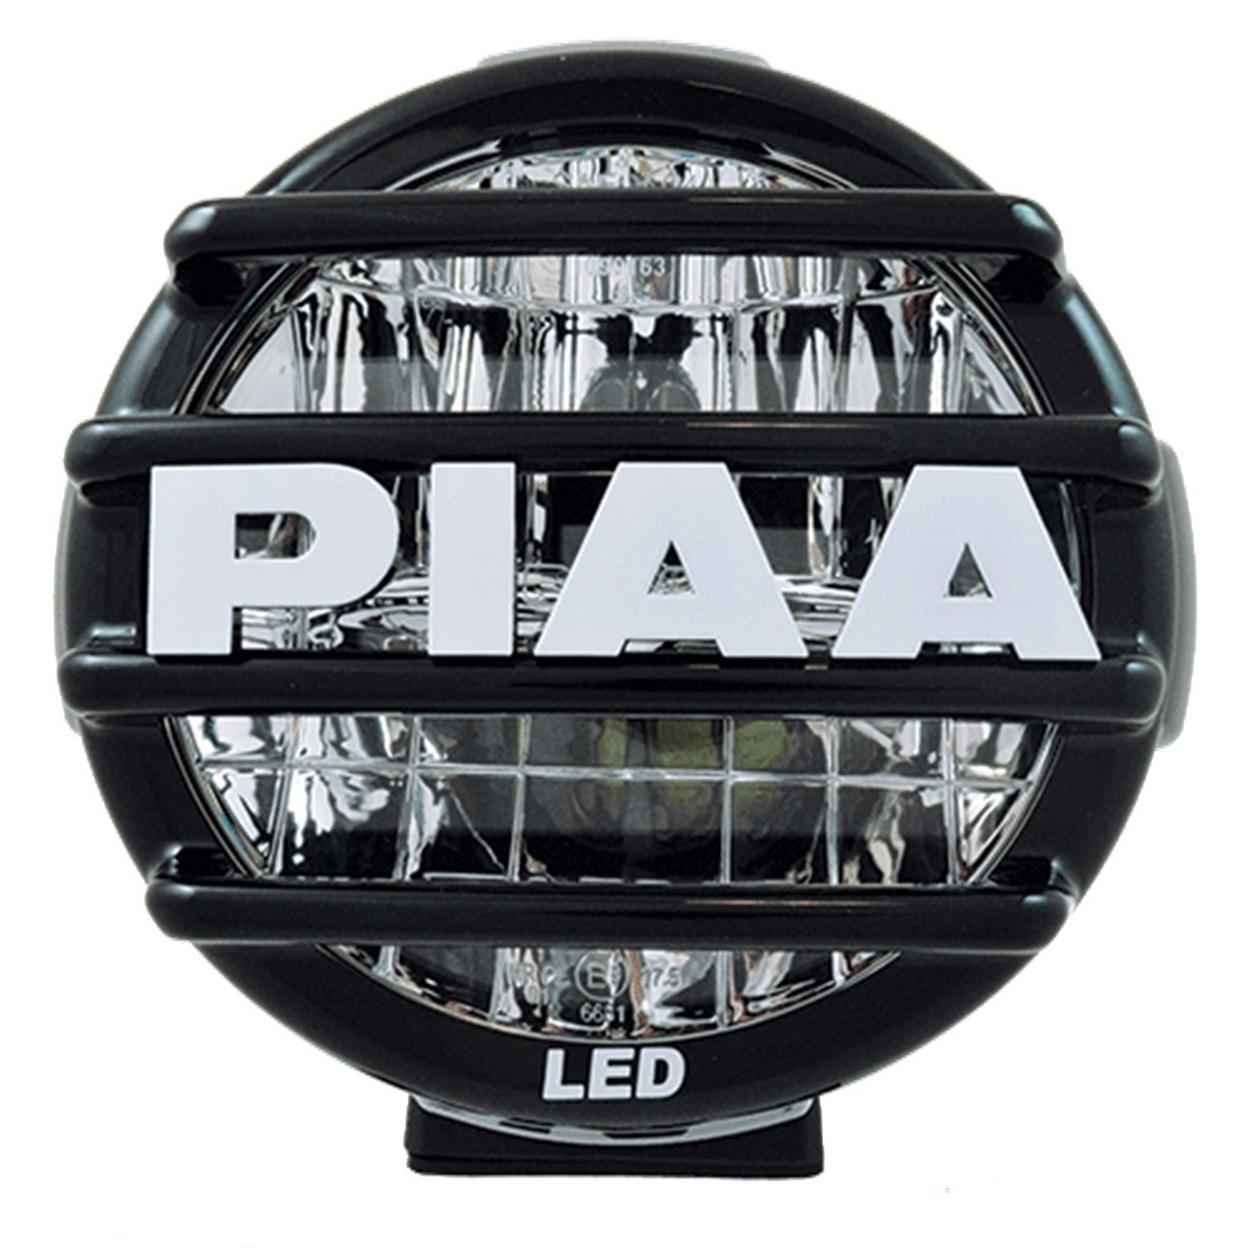 LP570 7IN. LED DRIVING LIGHT SINGLE; SAE COMPLIANT